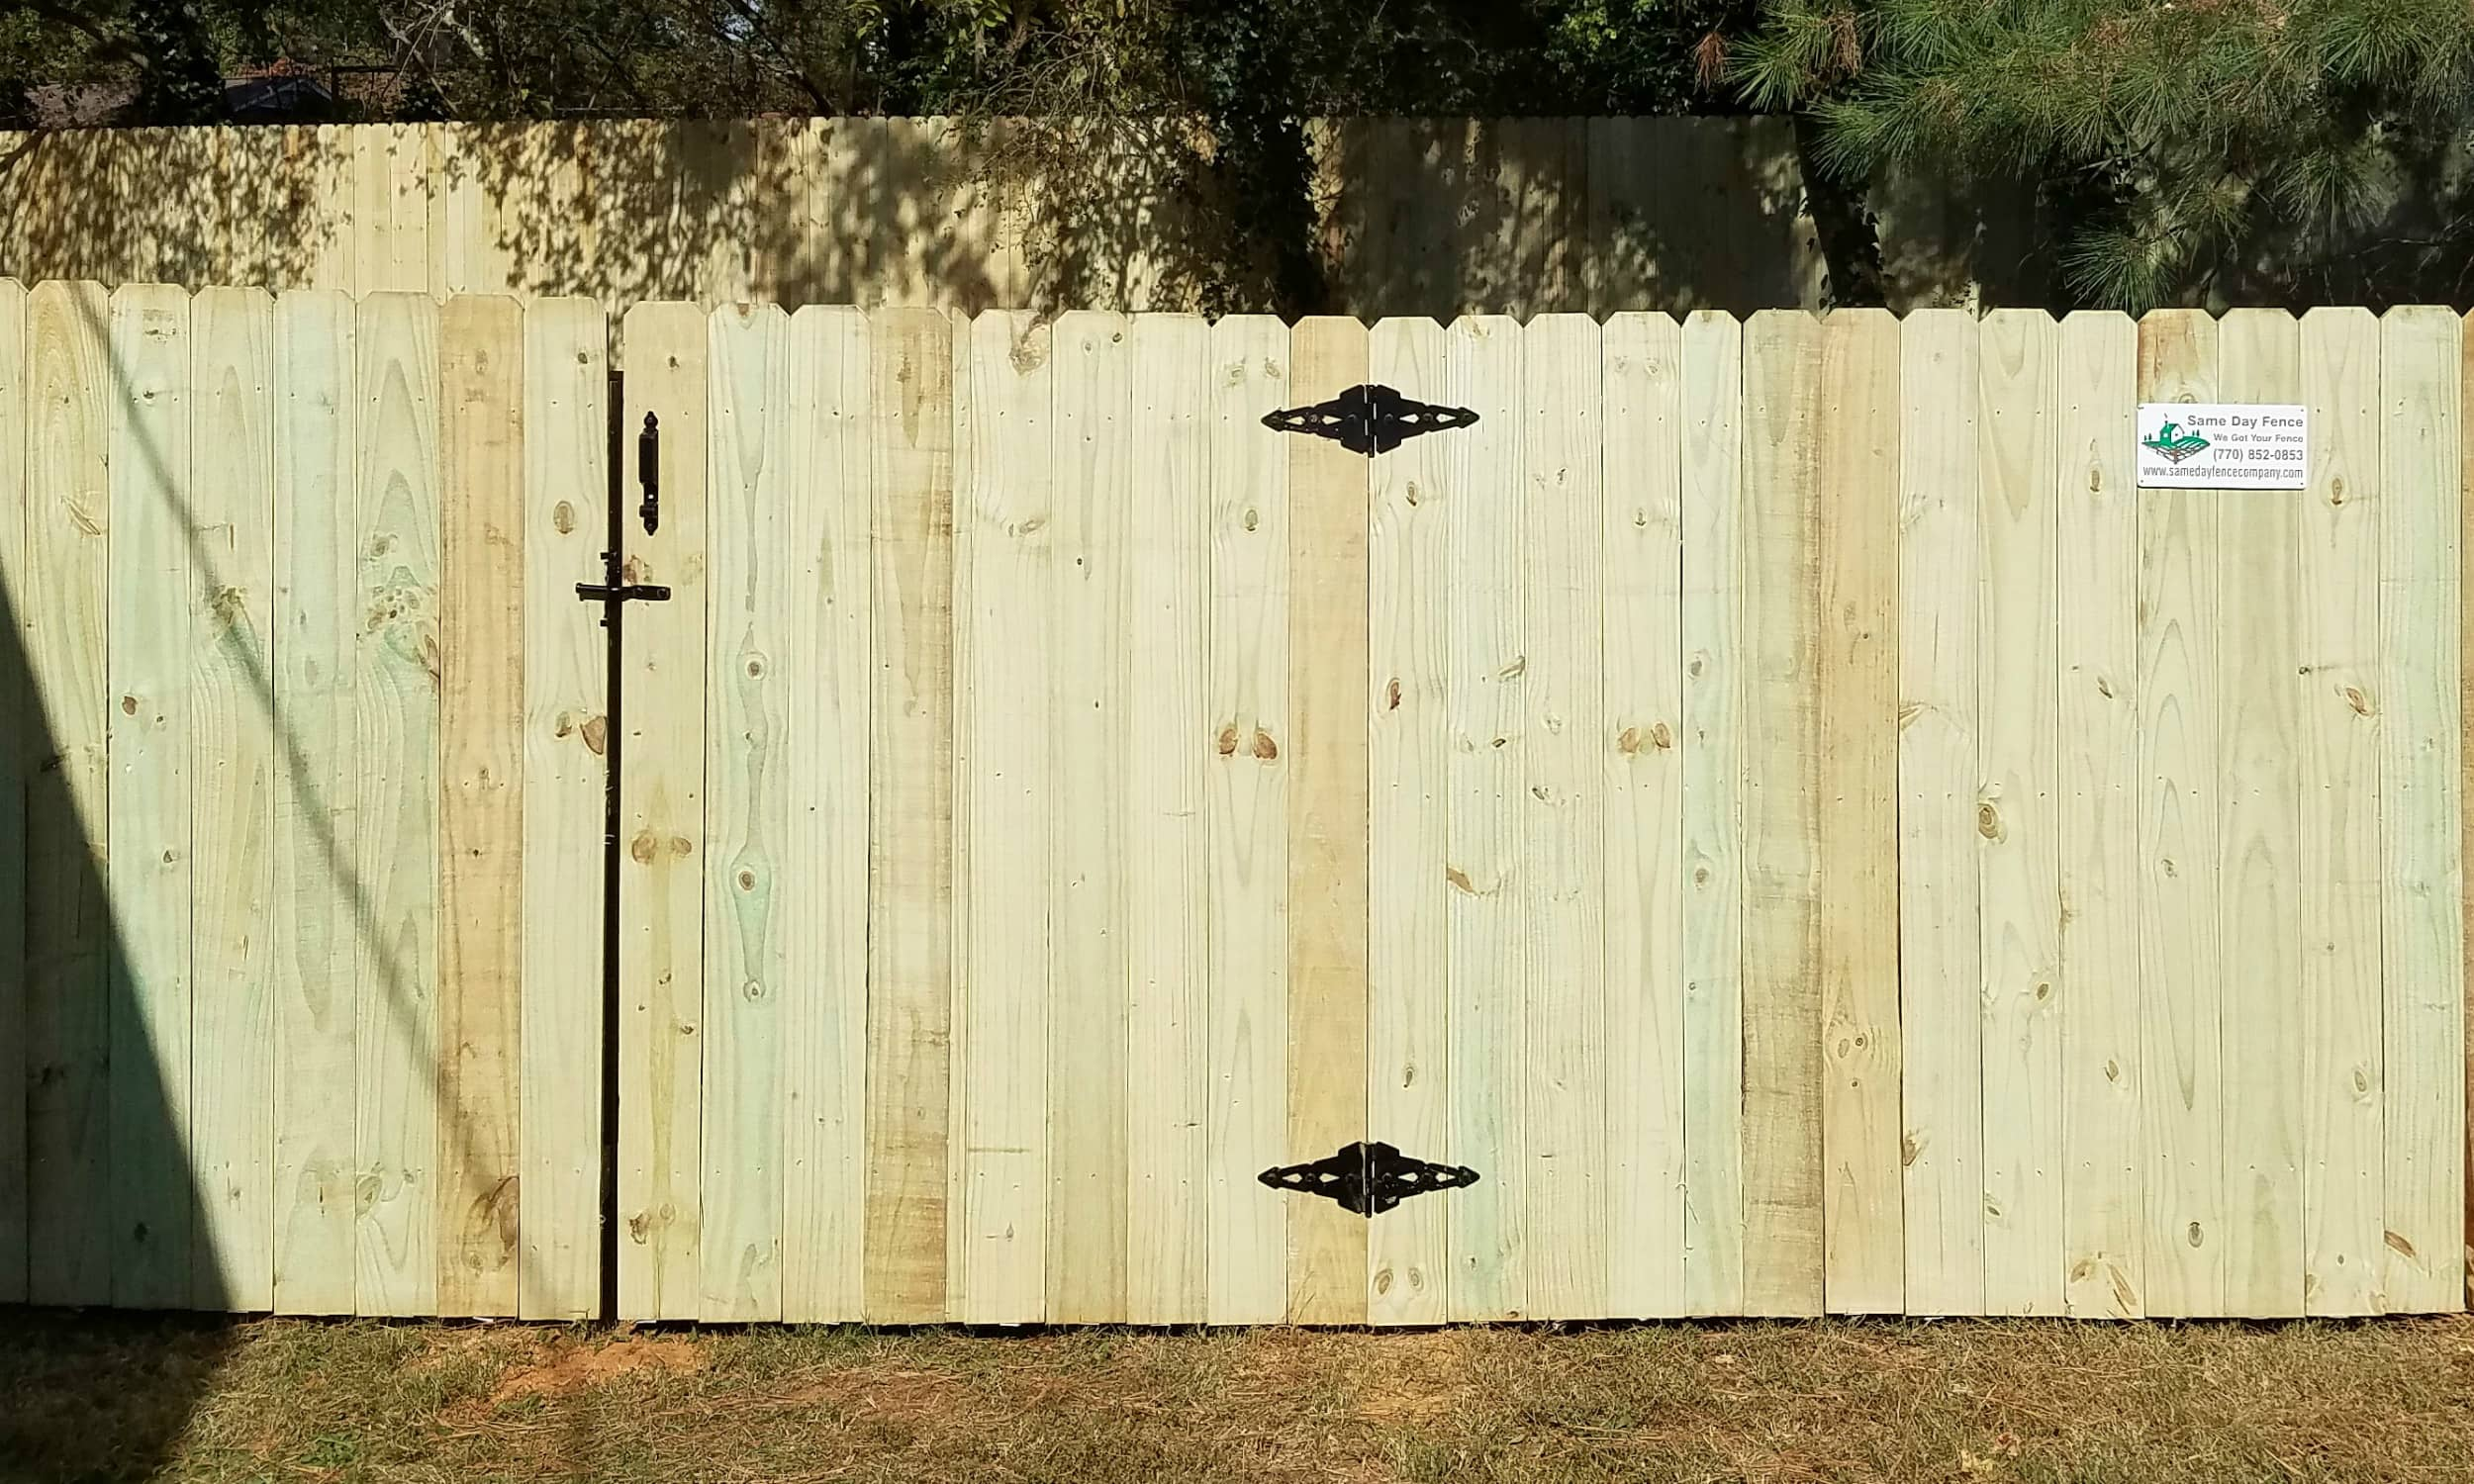 Straight Privacy Fence - Pine Wood - 6 Ft High.jpg